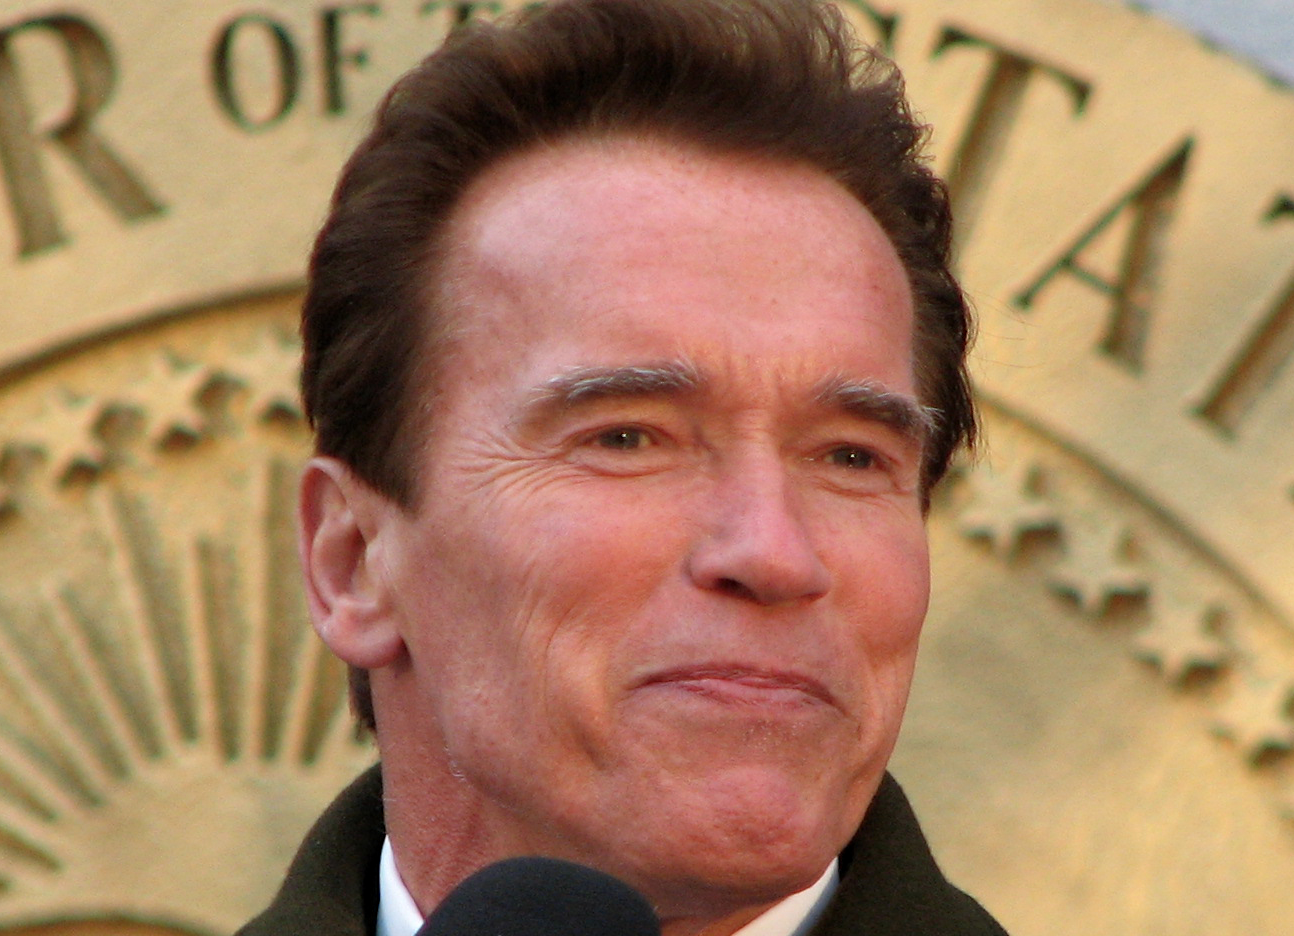 VIDEO: Arnold Schwarzenegger Trashes Trump For Low Ratings